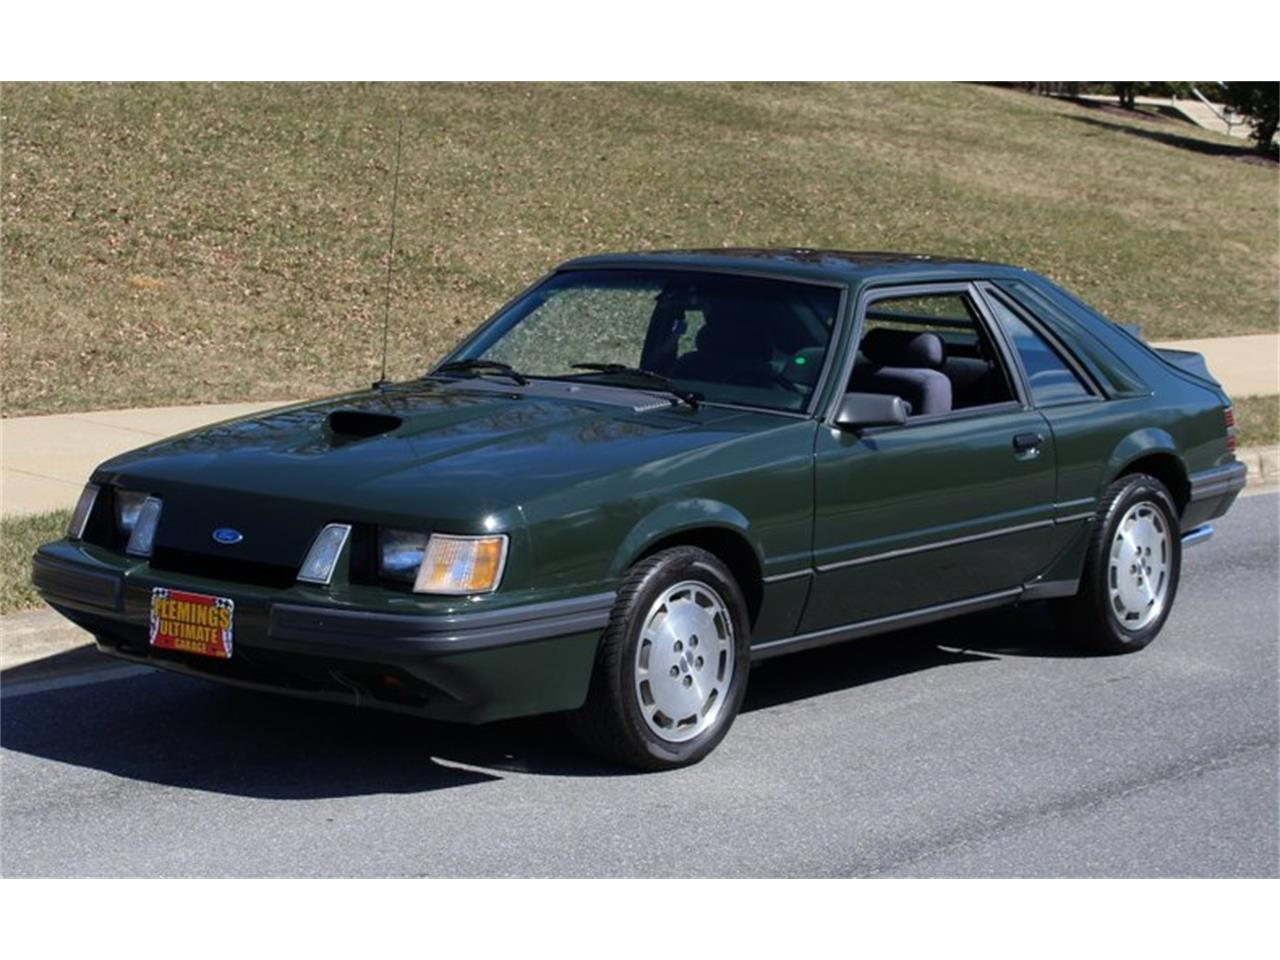 Large picture of 1985 ford mustang located in maryland meni